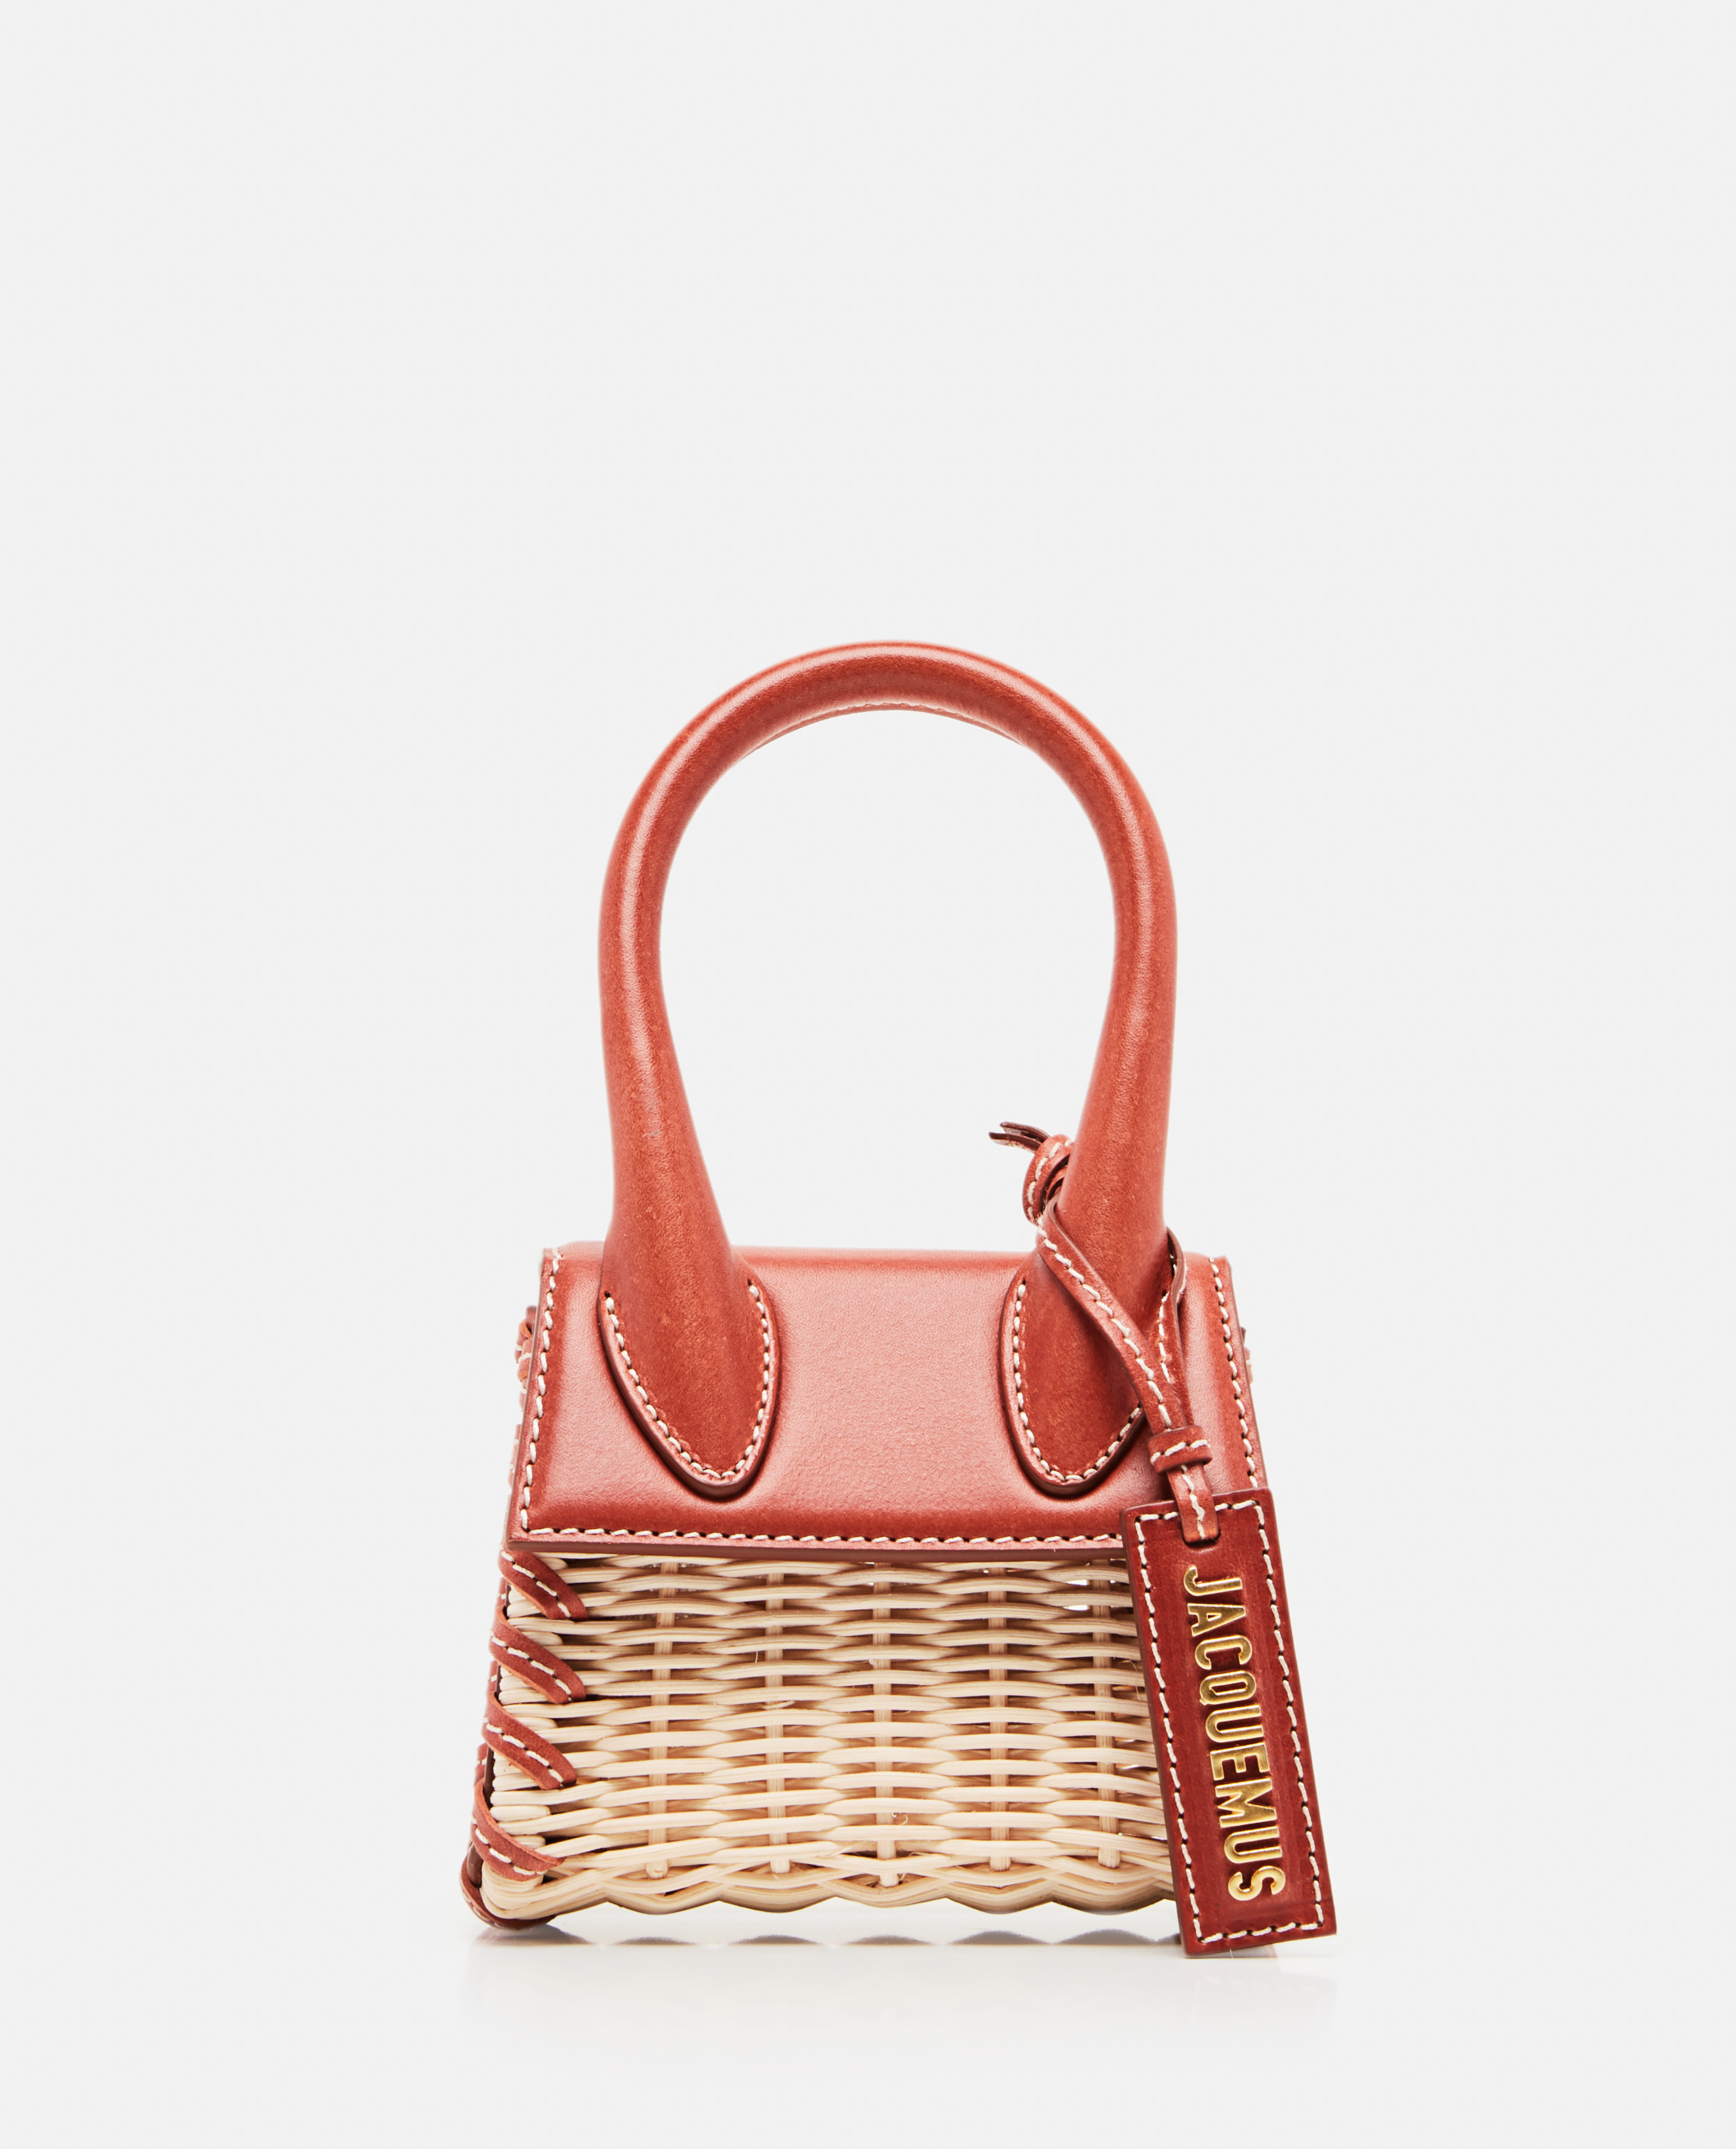 Jacquemus Le Chiquito Mini Leather Bag In Red